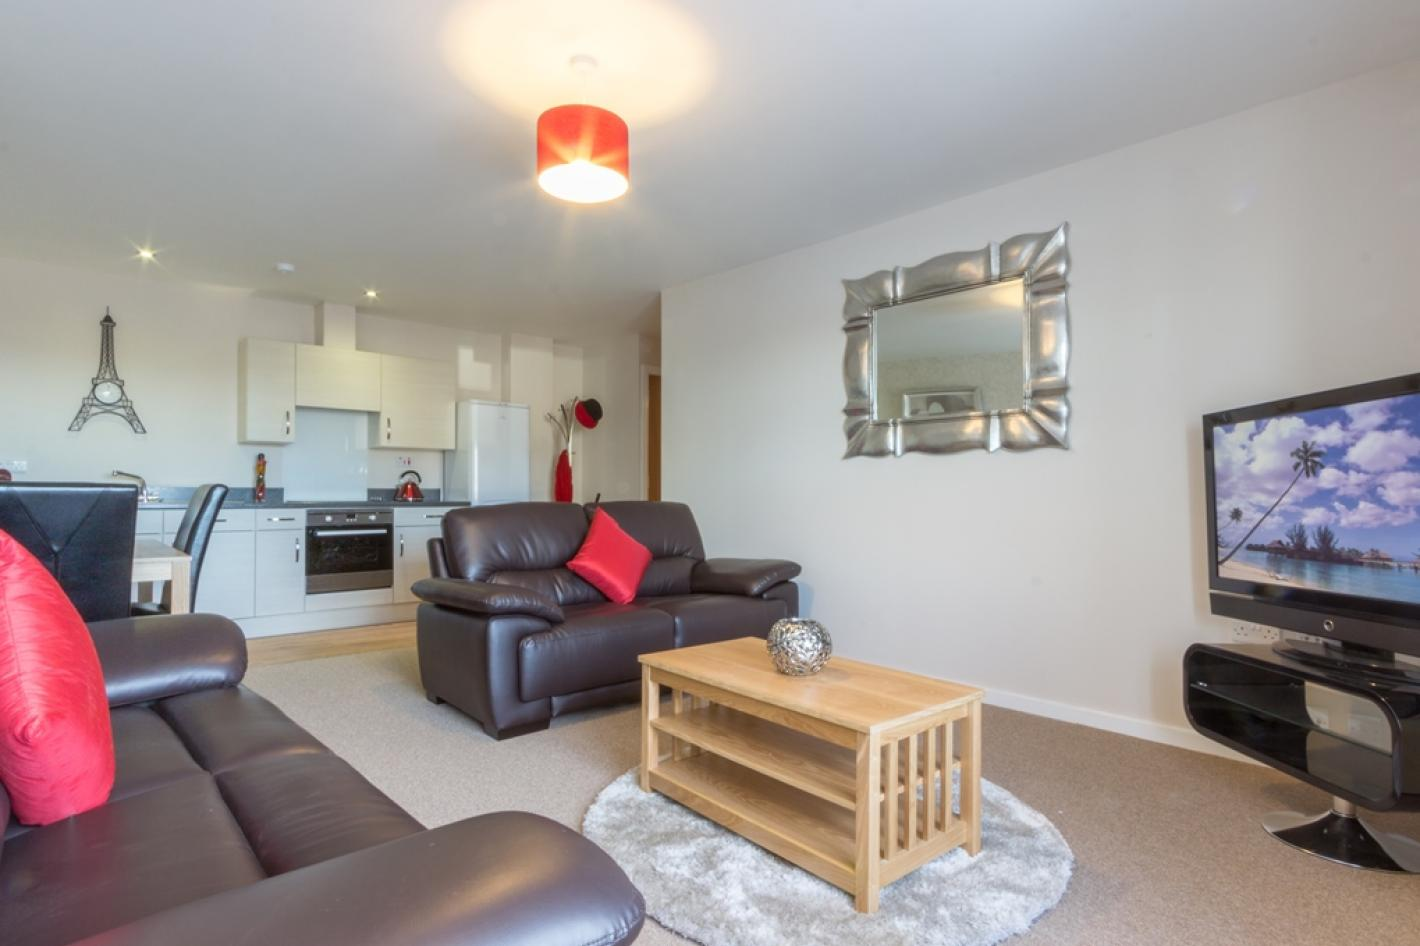 lounge and kitchen area, large sofas, white kitchen cupboards